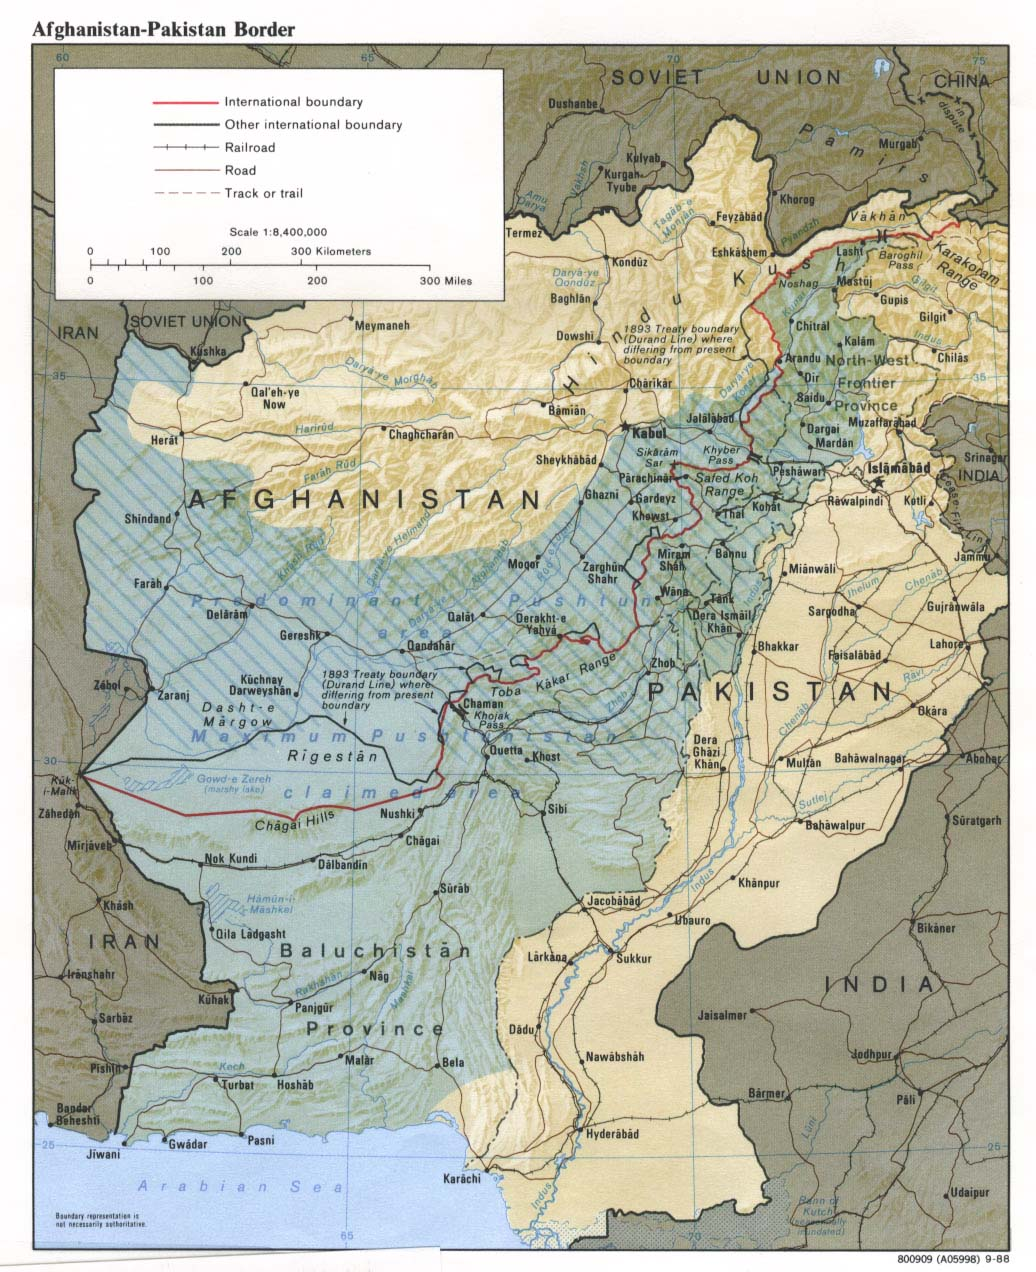 2015 11 18 1447859099 8510007 Durand_Line_Border_Between_Afghanistan_And_Pakistan